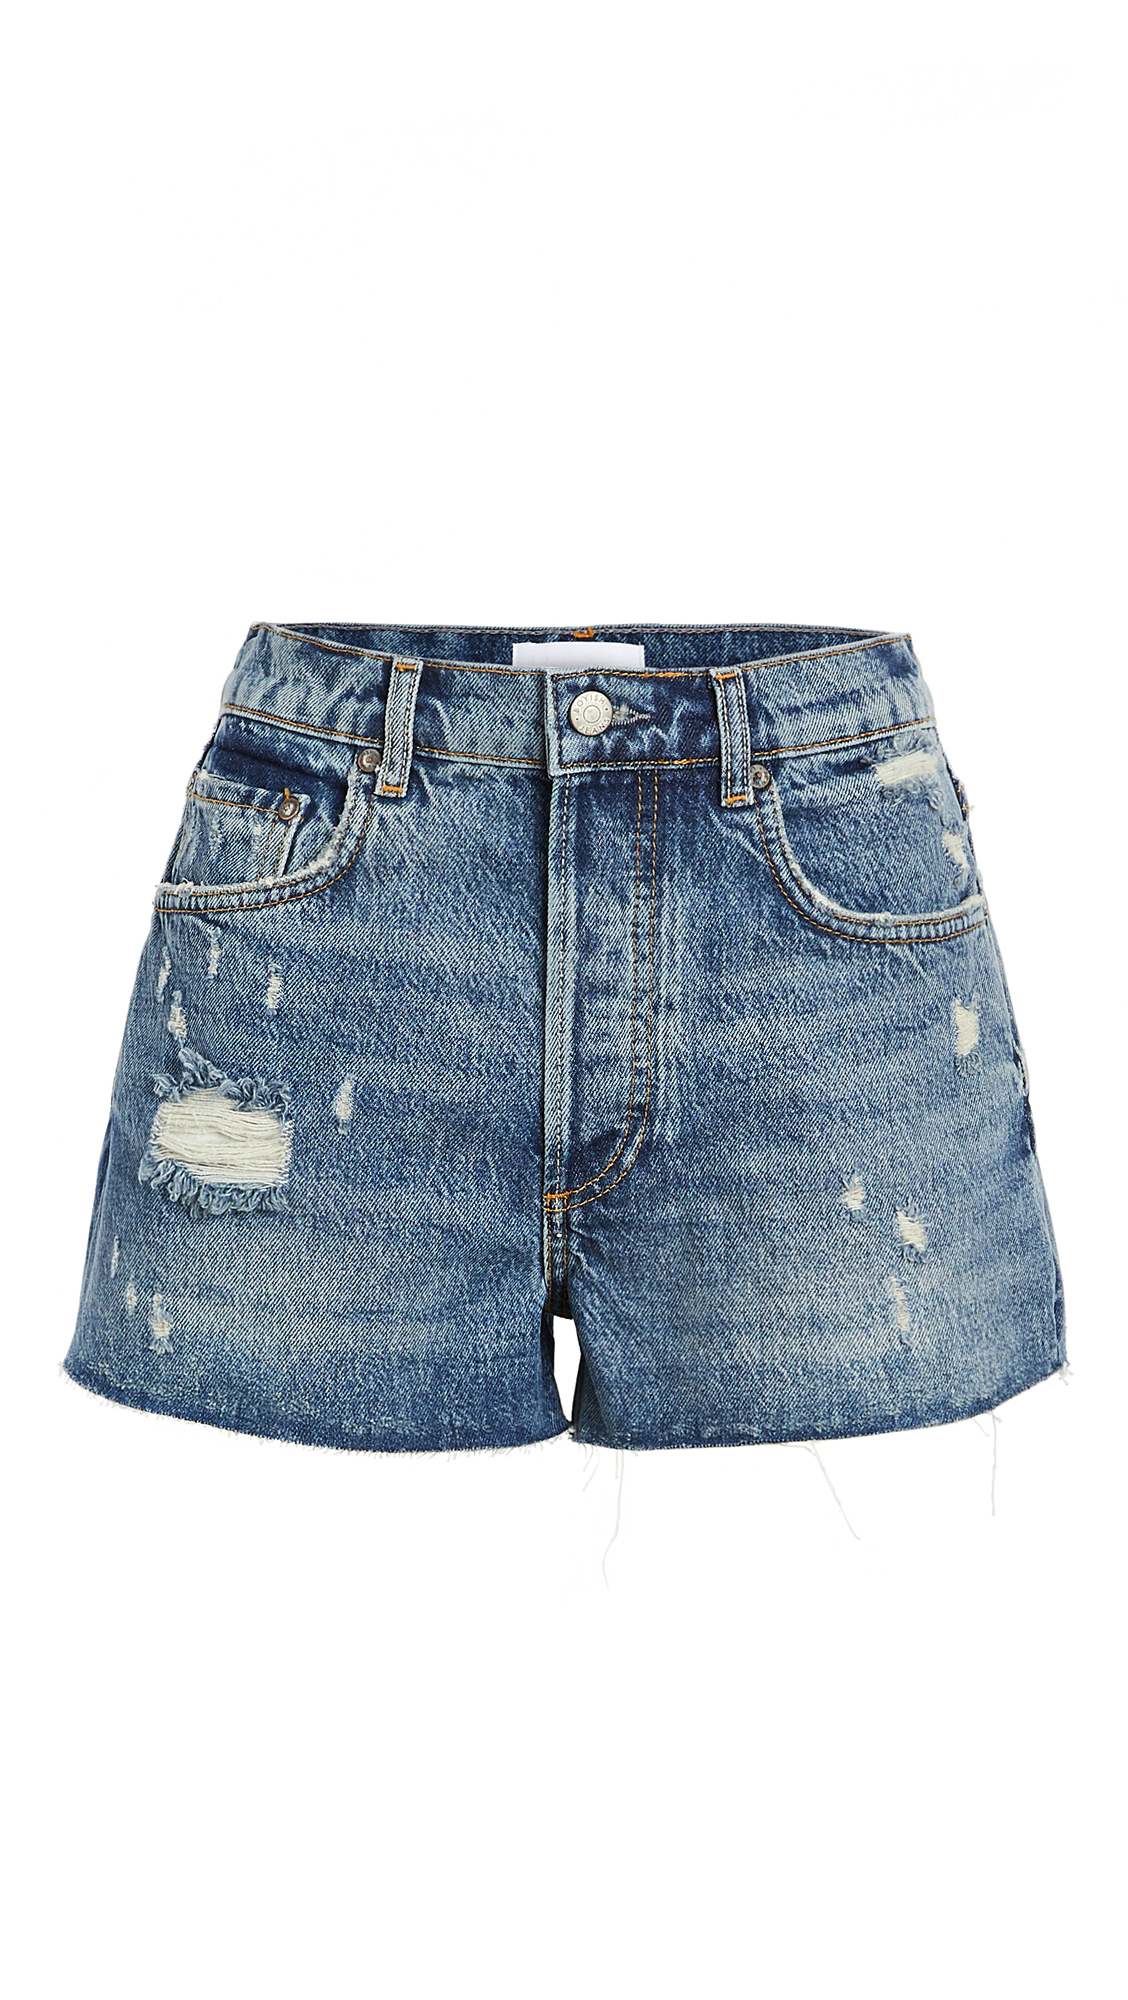 Boyish The Cody High Rise Rigid Cutoff Shorts